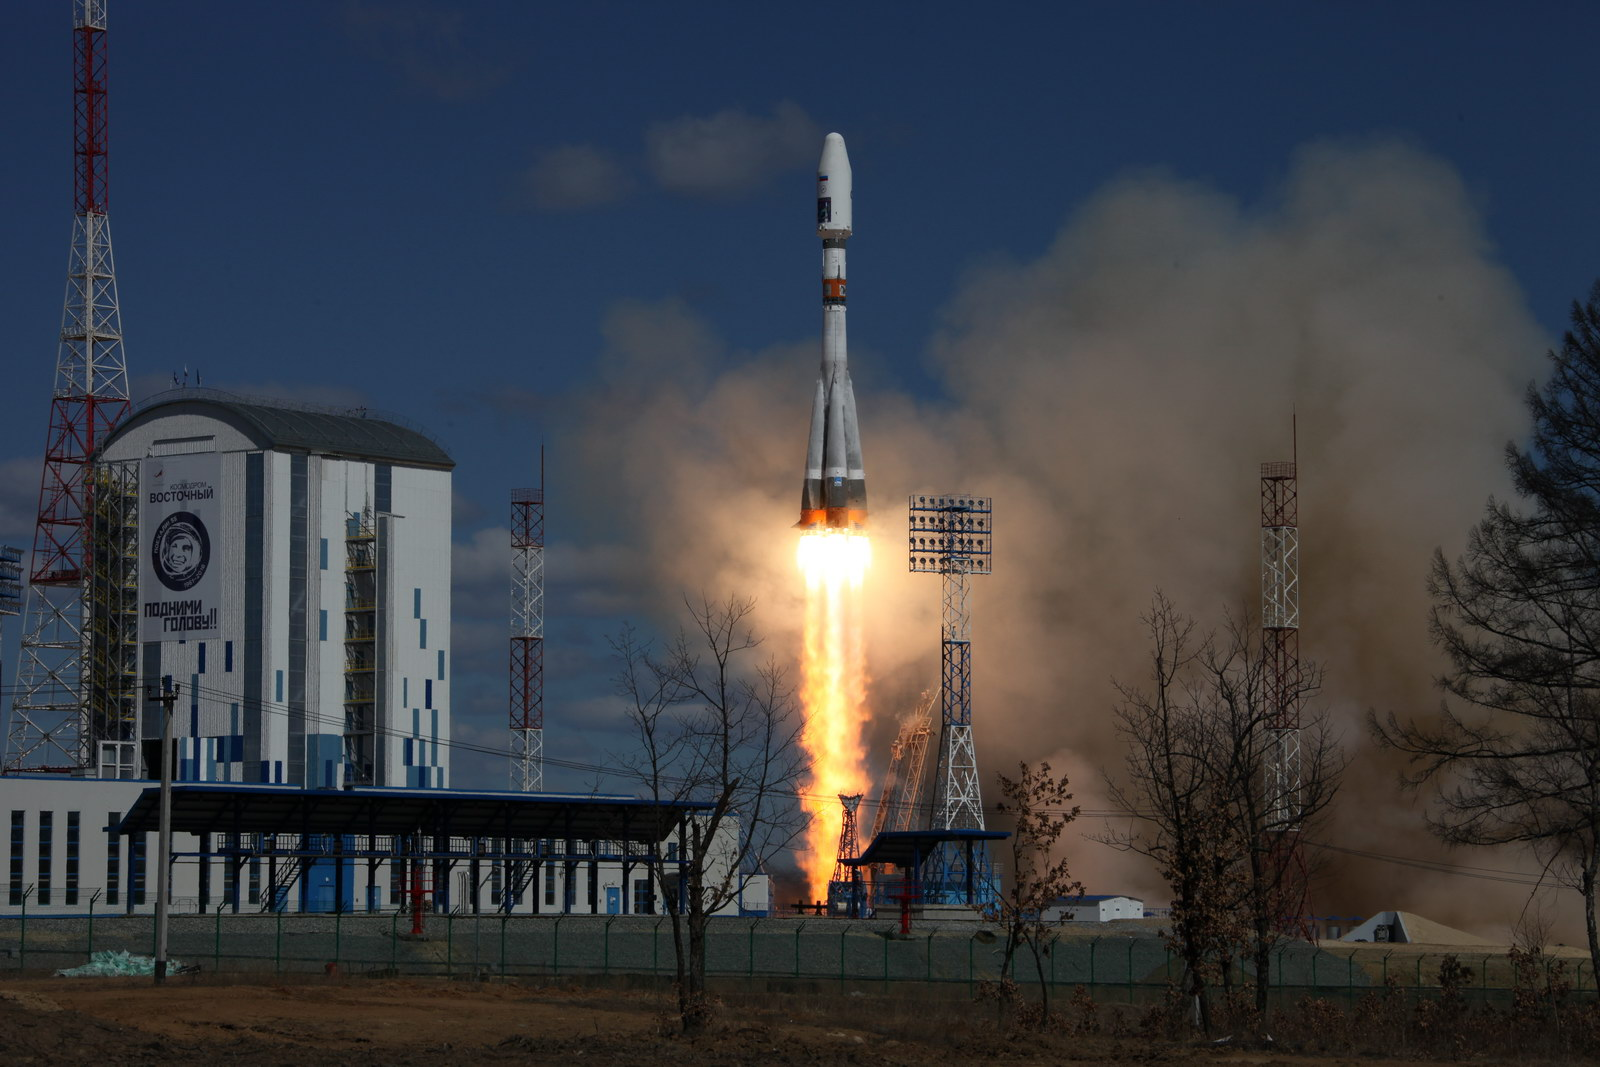 A Soyuz rocket lifts off for the first time from its new launch pad at the Vostochny Cosmodrome in Russia's Far East. Credit: SpaceX